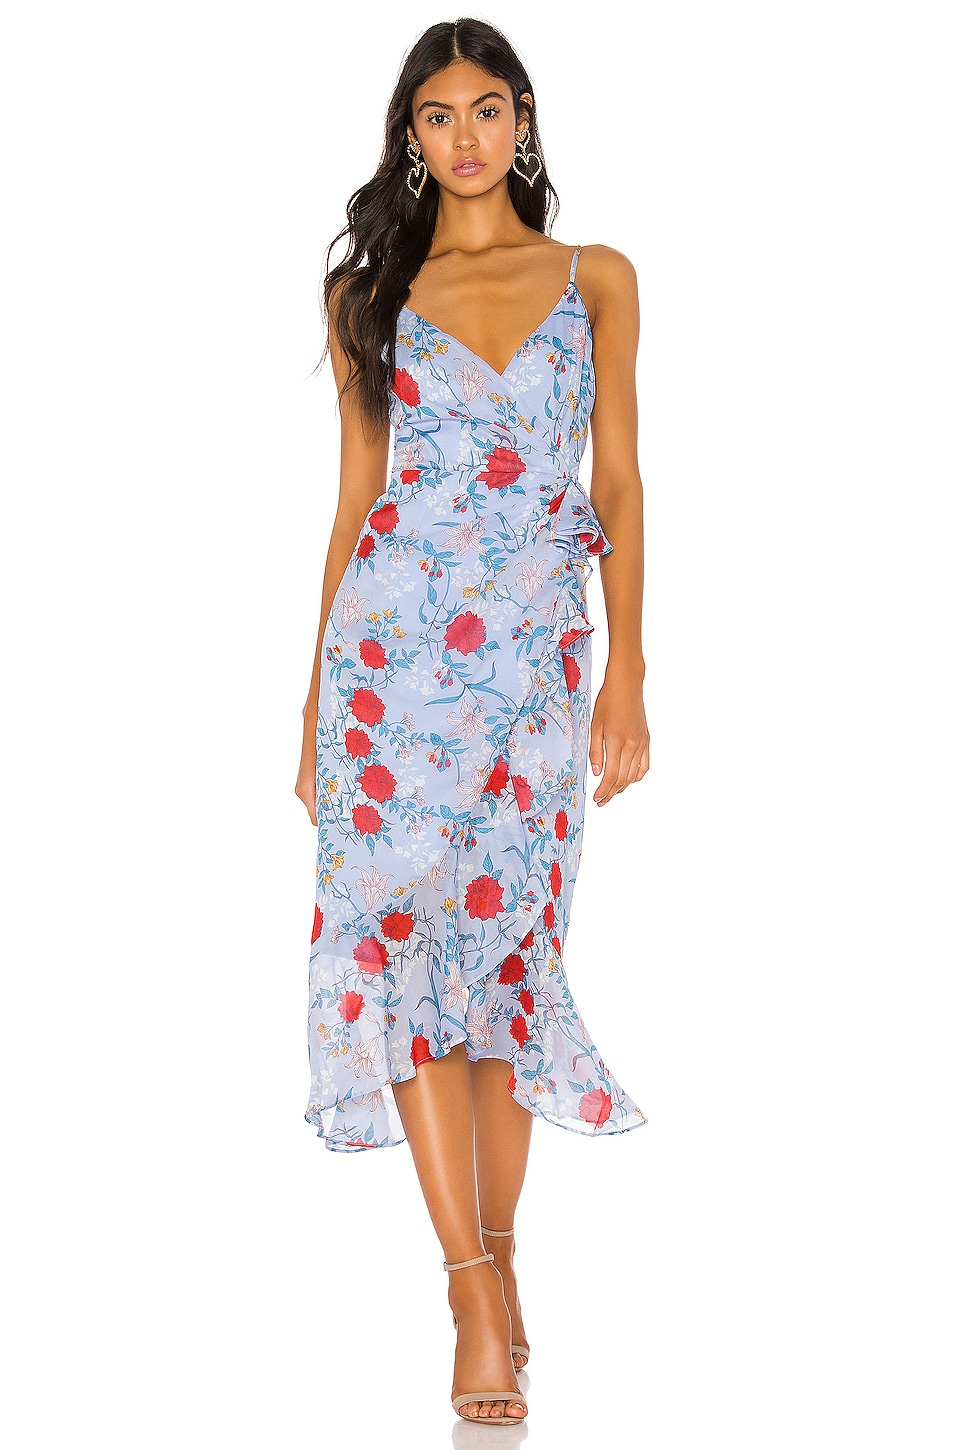 Bardot Dress in Blue & Red Floral